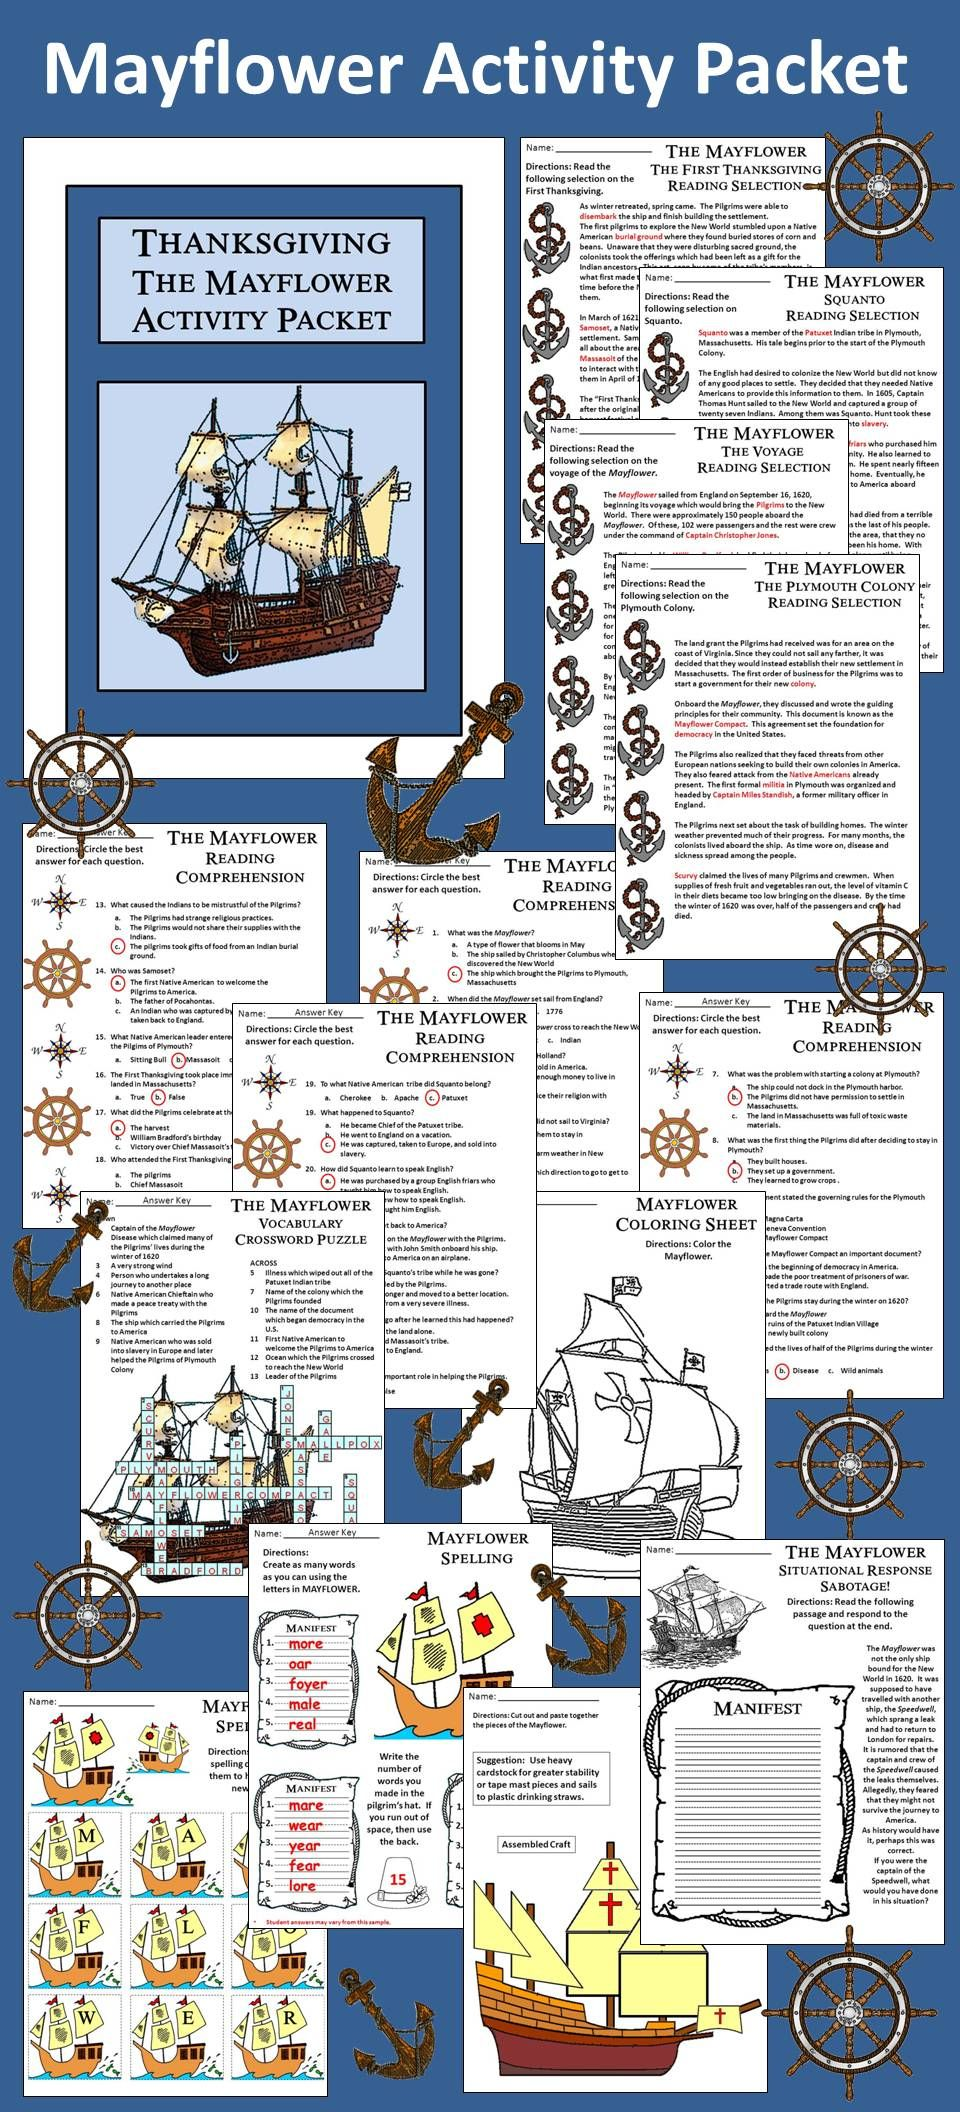 Worksheets Mayflower Compact Worksheet mayflower compact in bottle and products